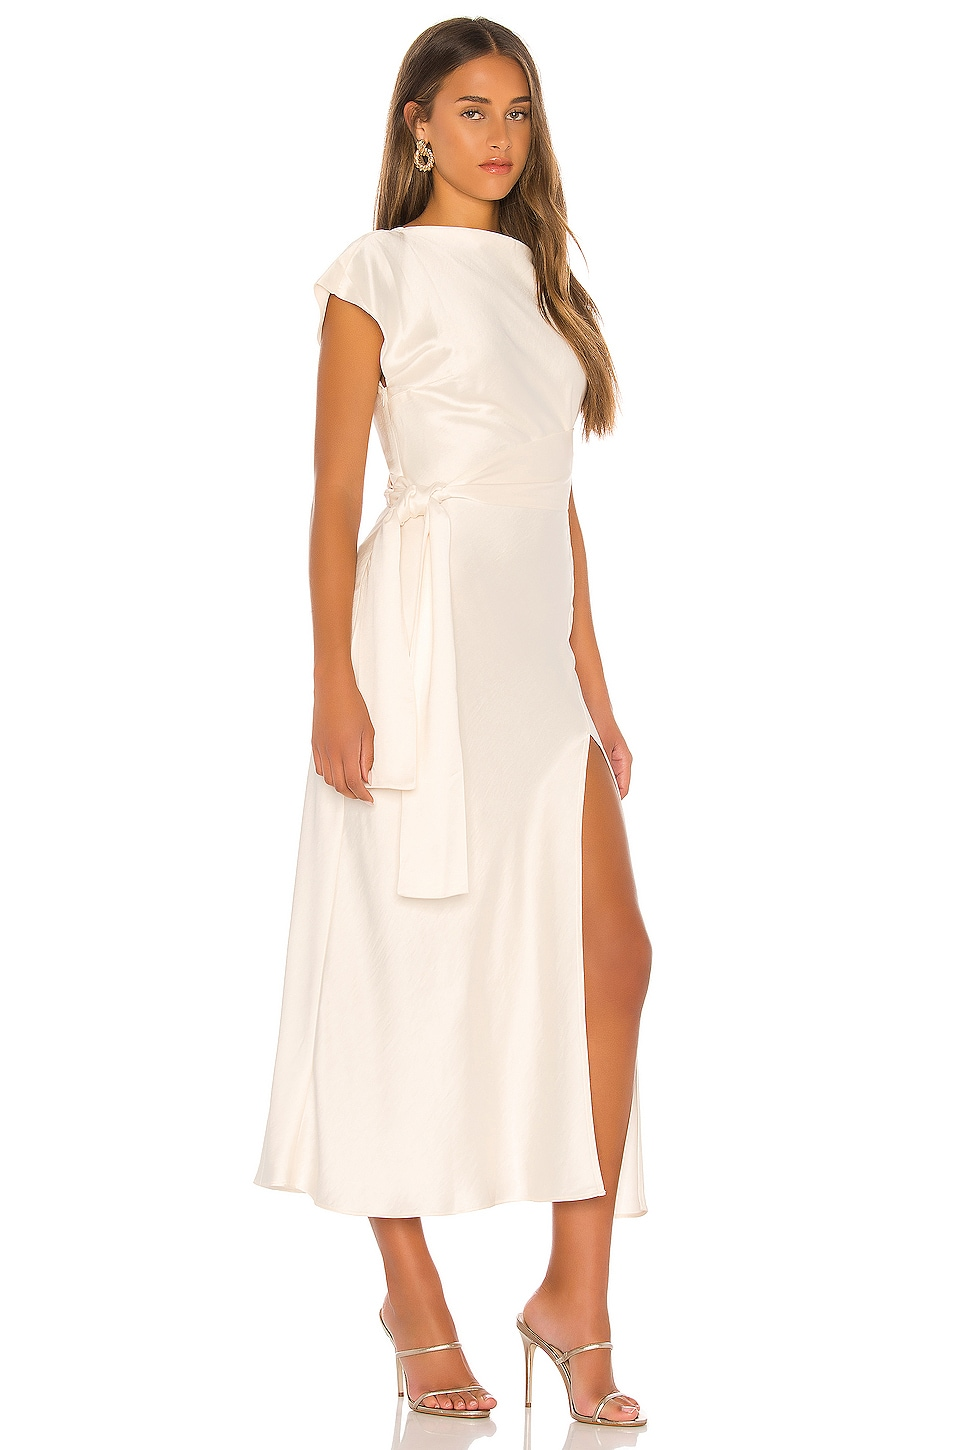 Piper Asymmetrical Midi Dress, view 2, click to view large image.